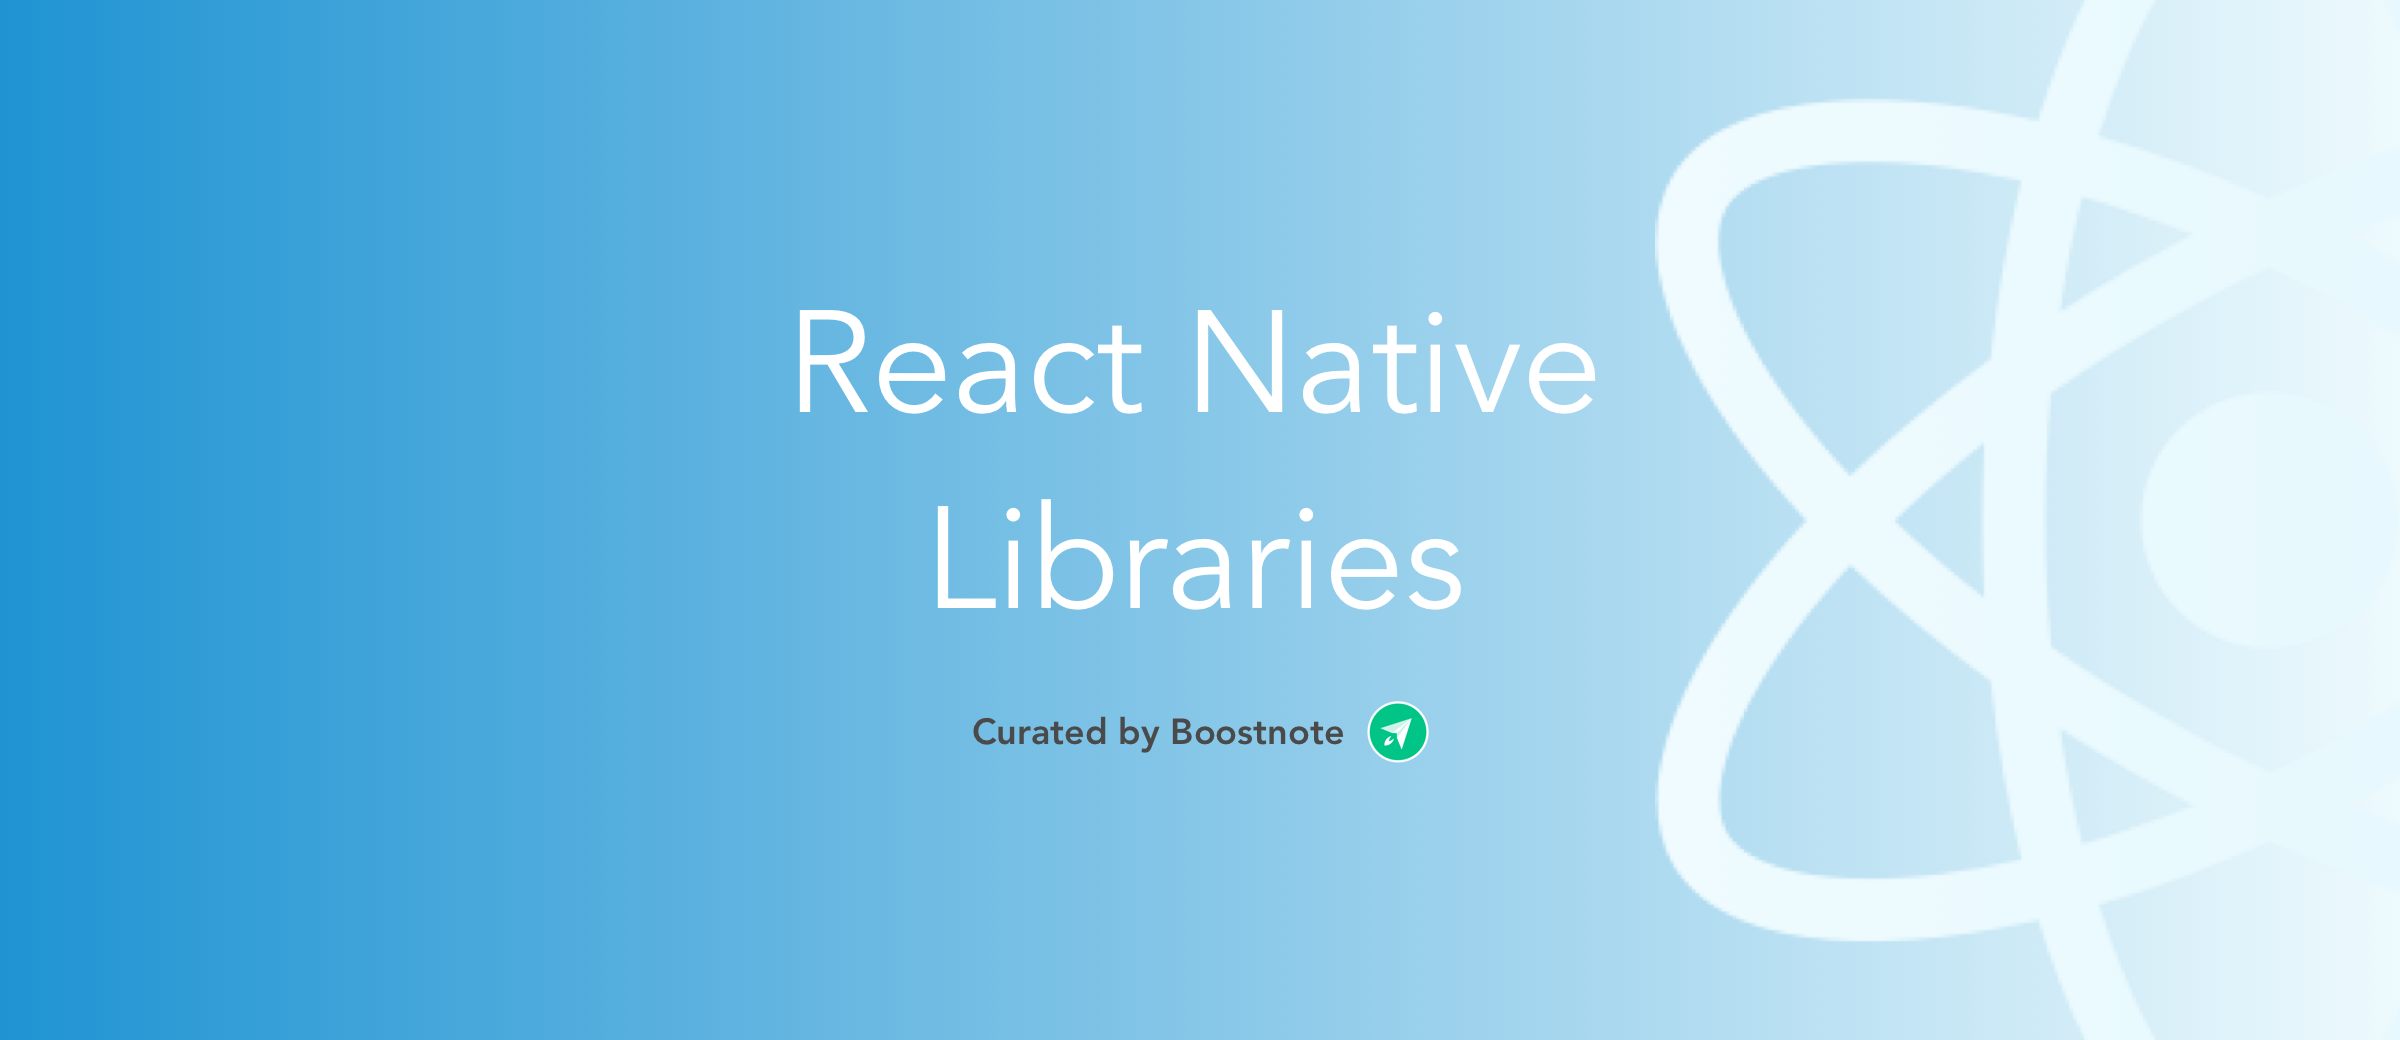 The 5 Selection ReactNative Libraries on Github - Boostnote